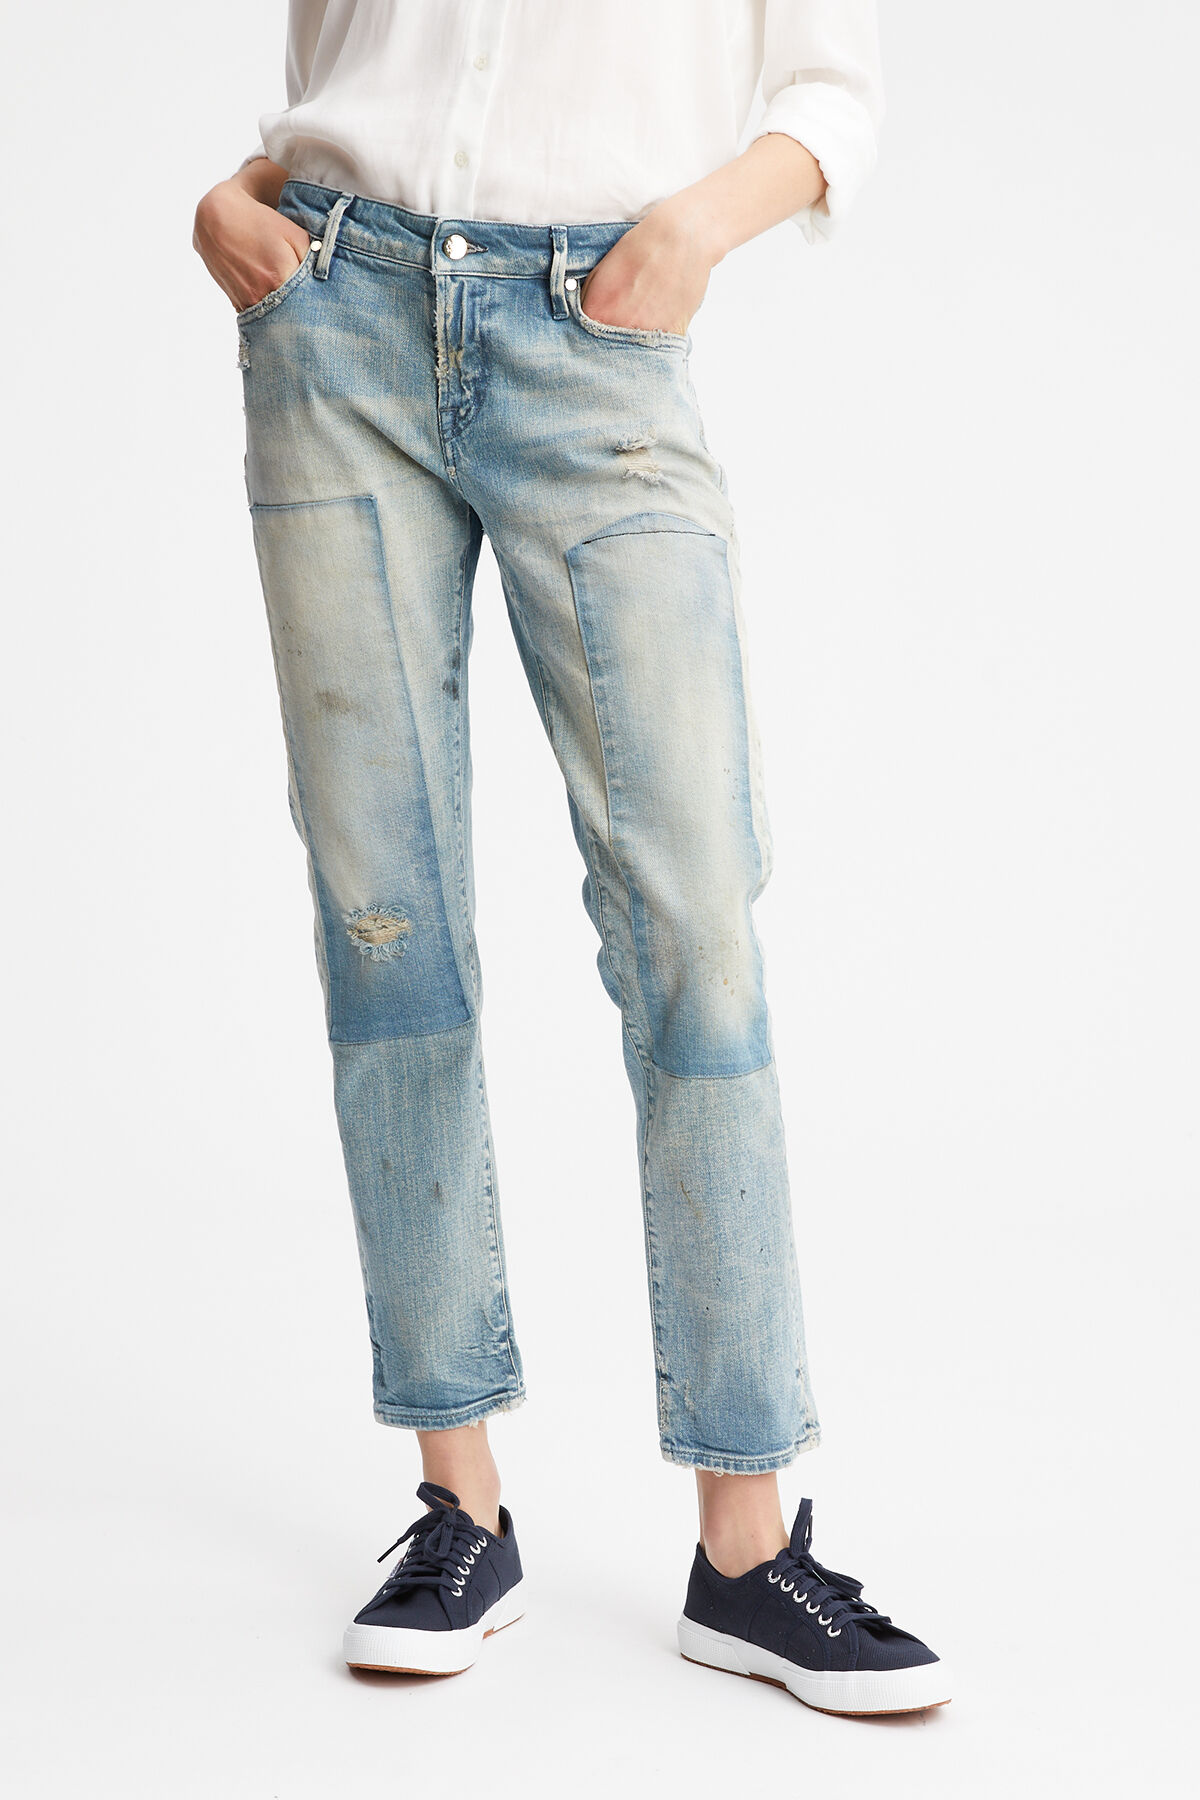 MONROE Rip & Repair Patched Denim - Girlfriend Fit